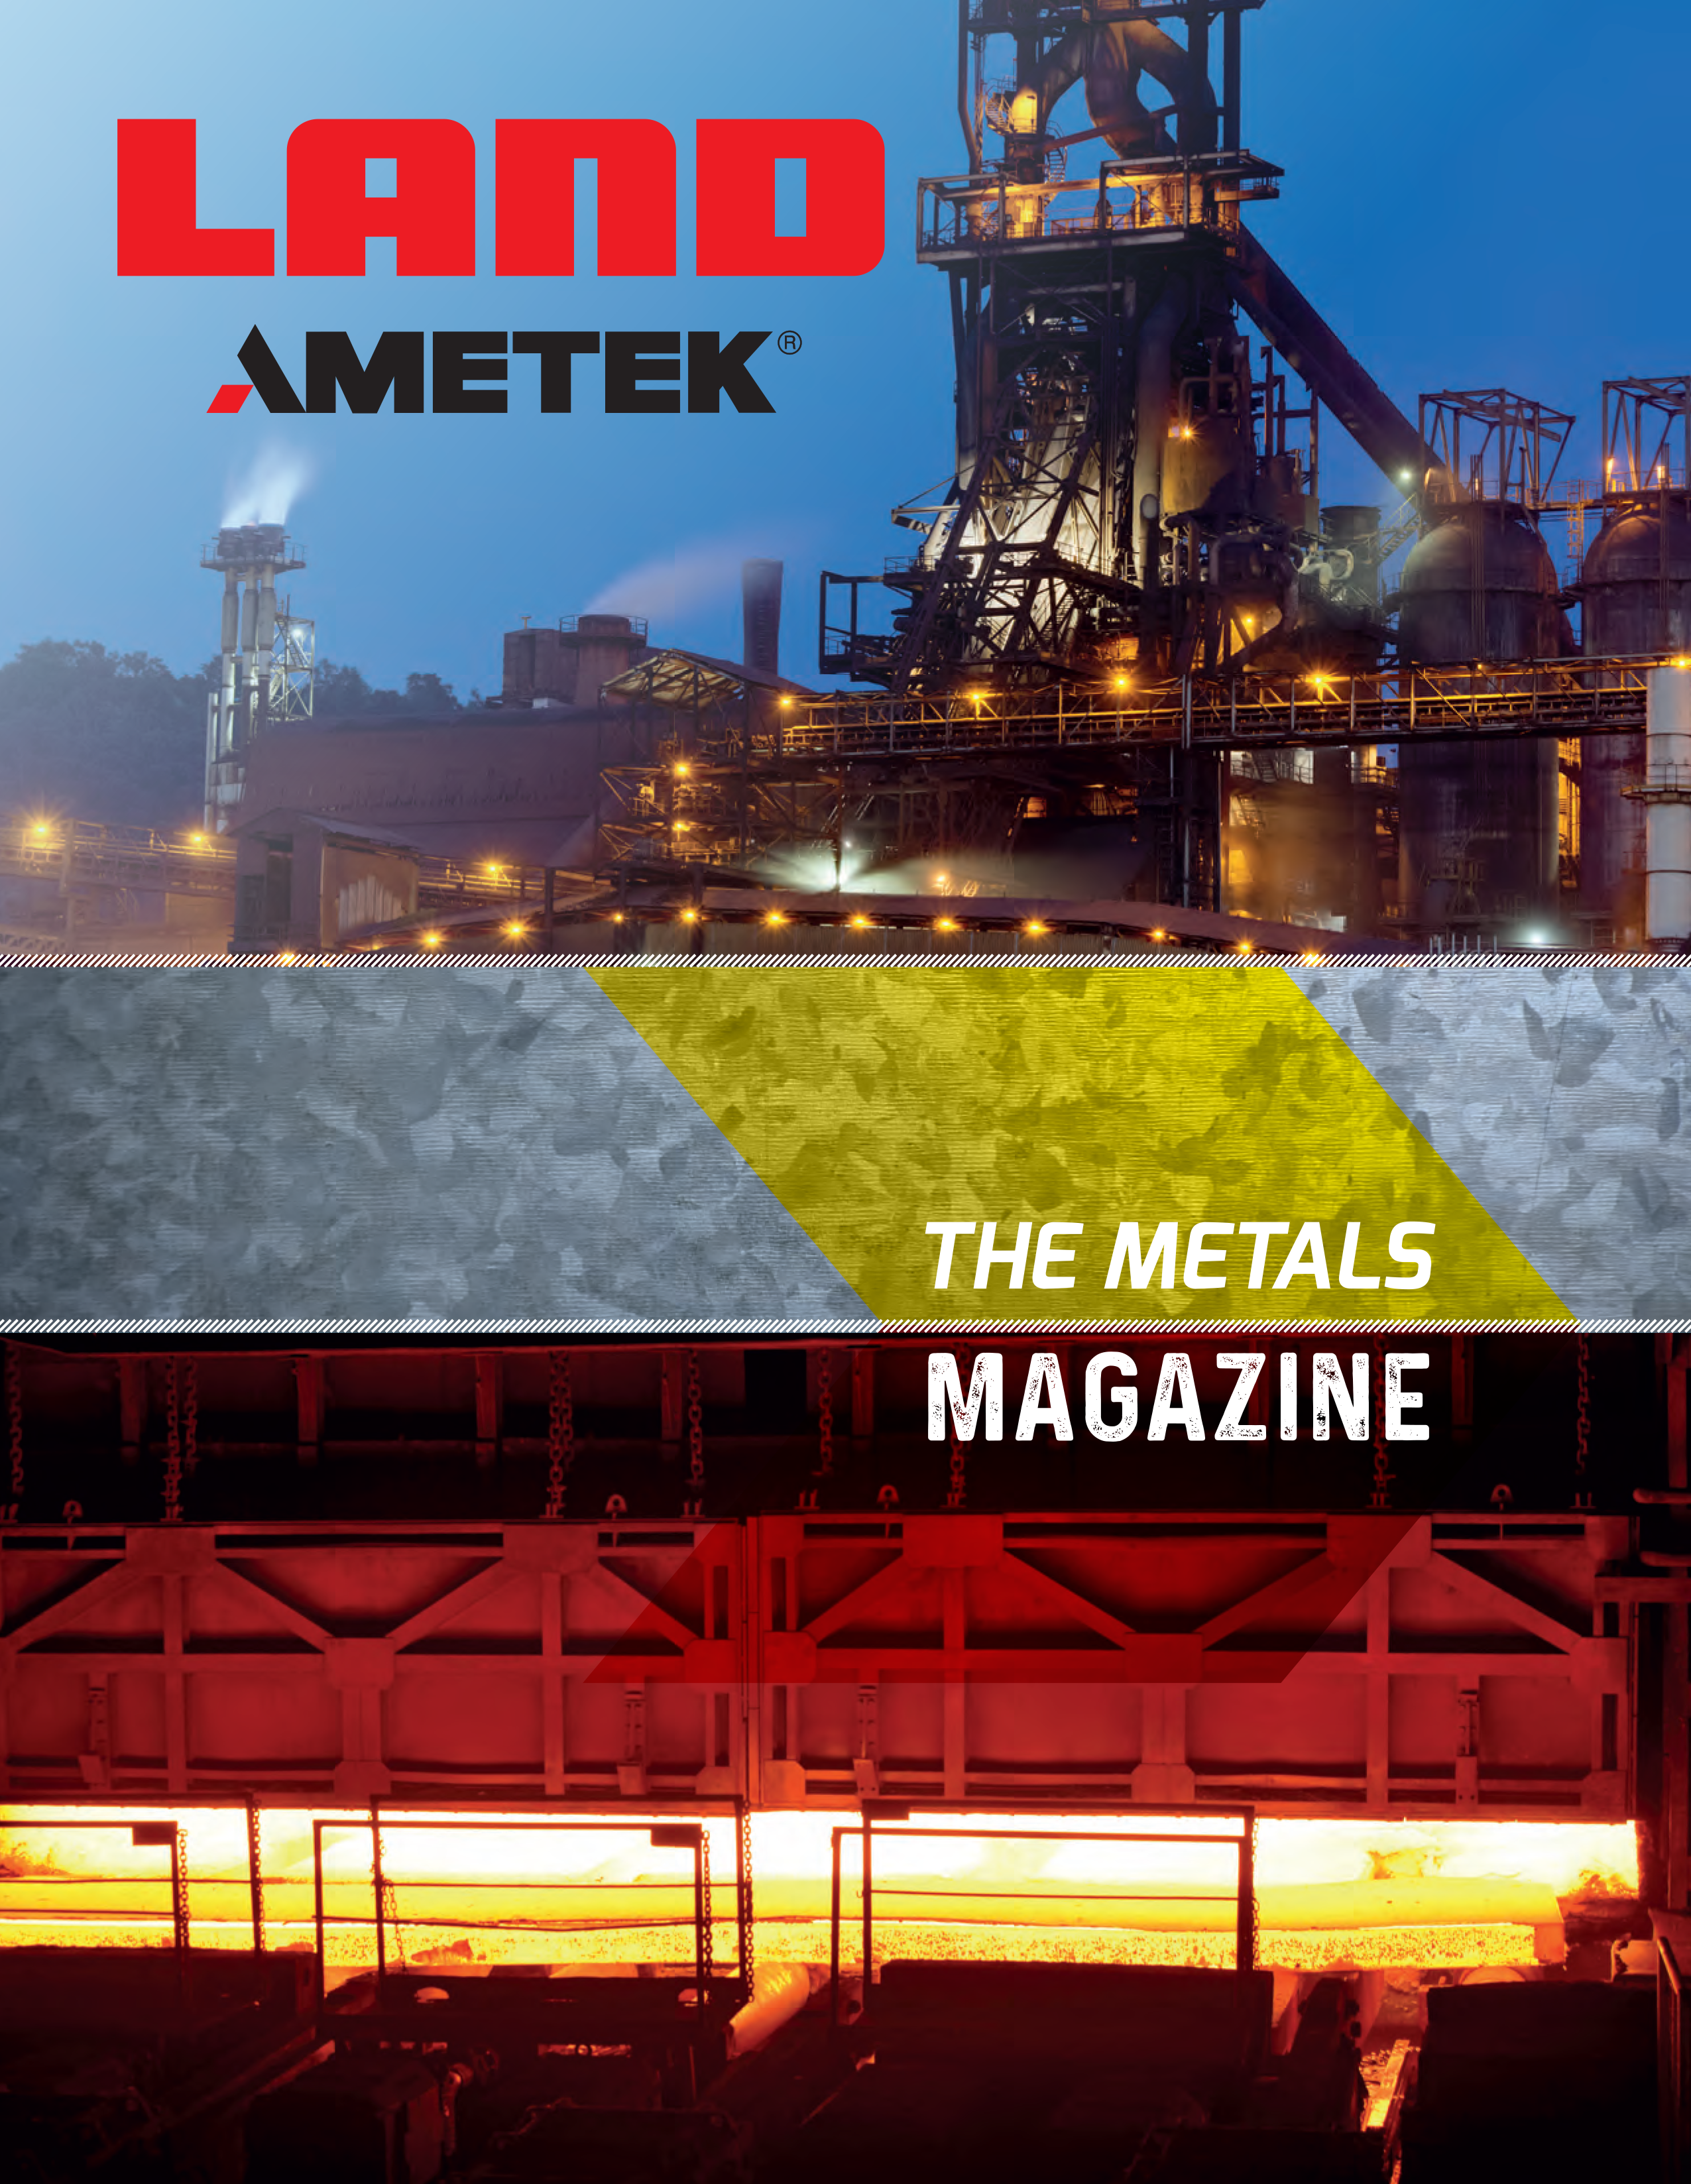 The Metals Magazine